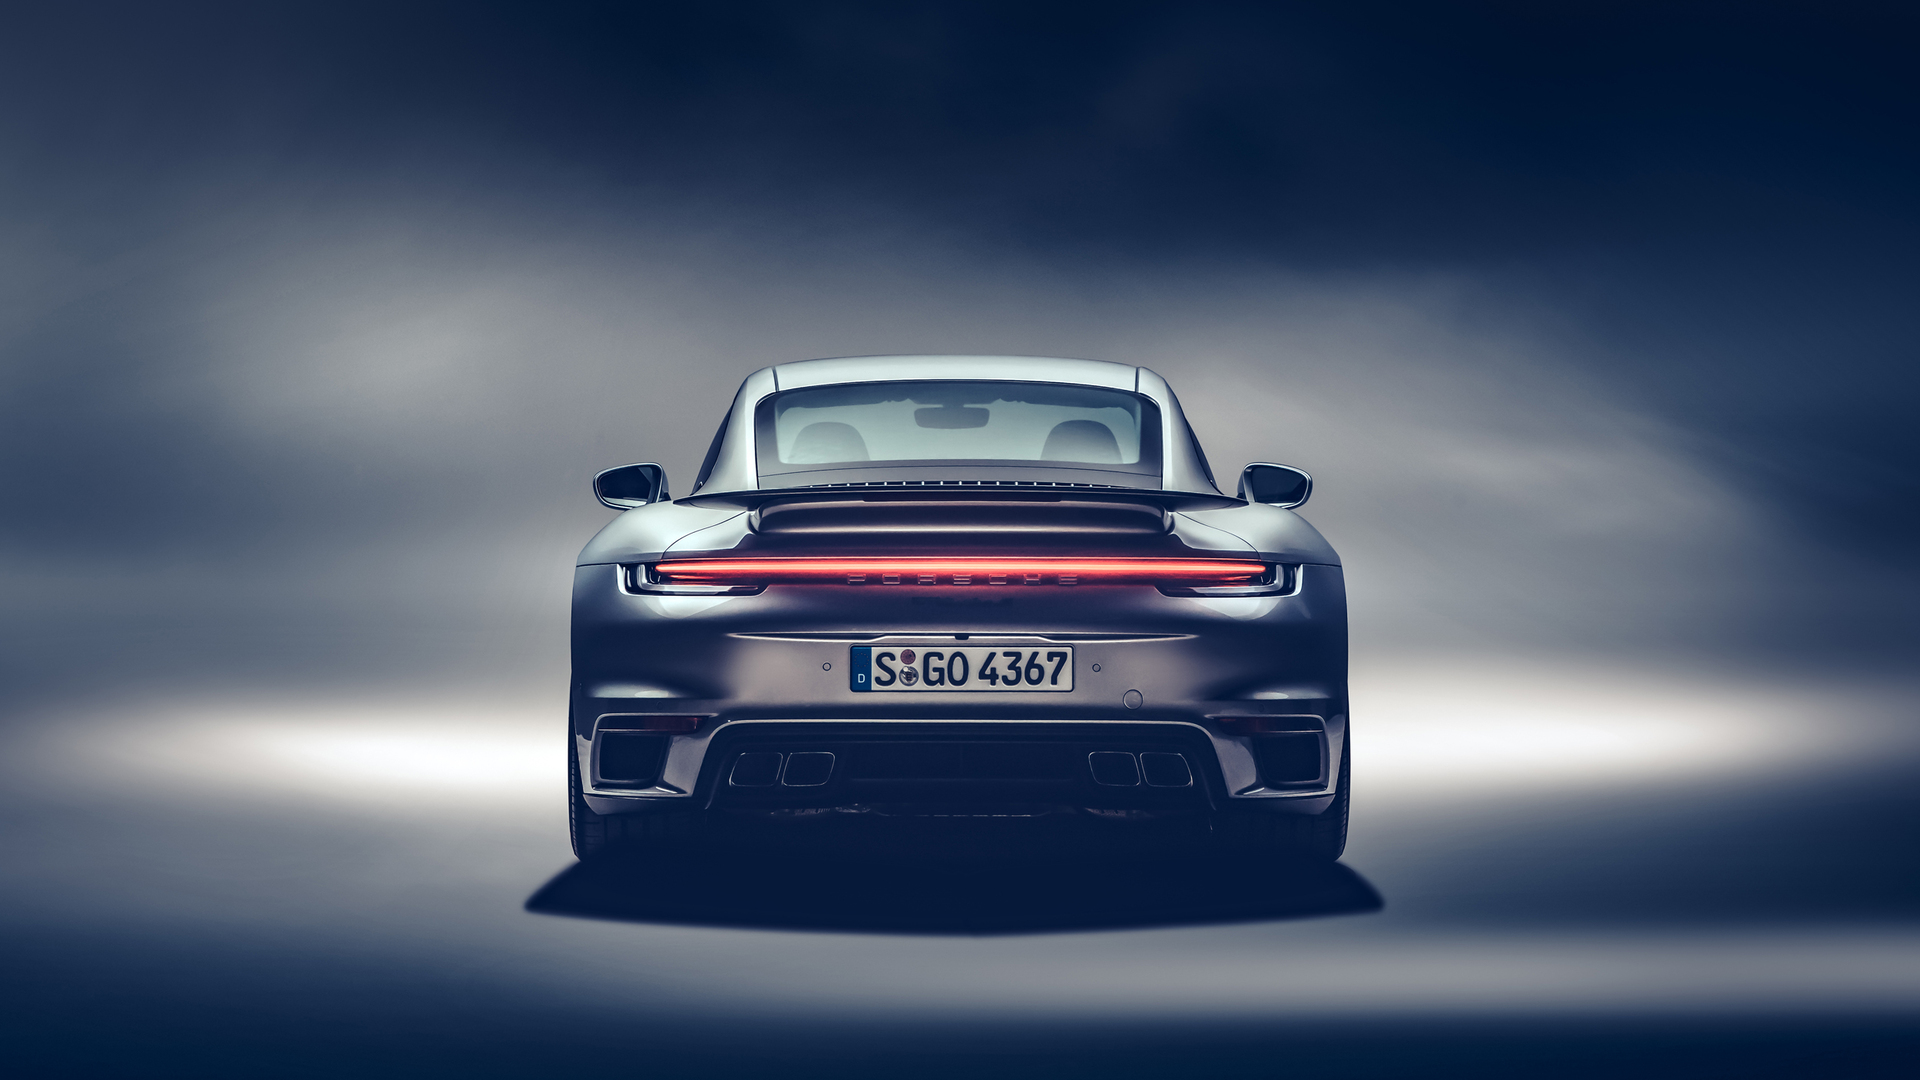 1920x1080 2021 Porsche 911 Turbo S Rear Laptop Full Hd 1080p Hd 4k Wallpapers Images Backgrounds Photos And Pictures